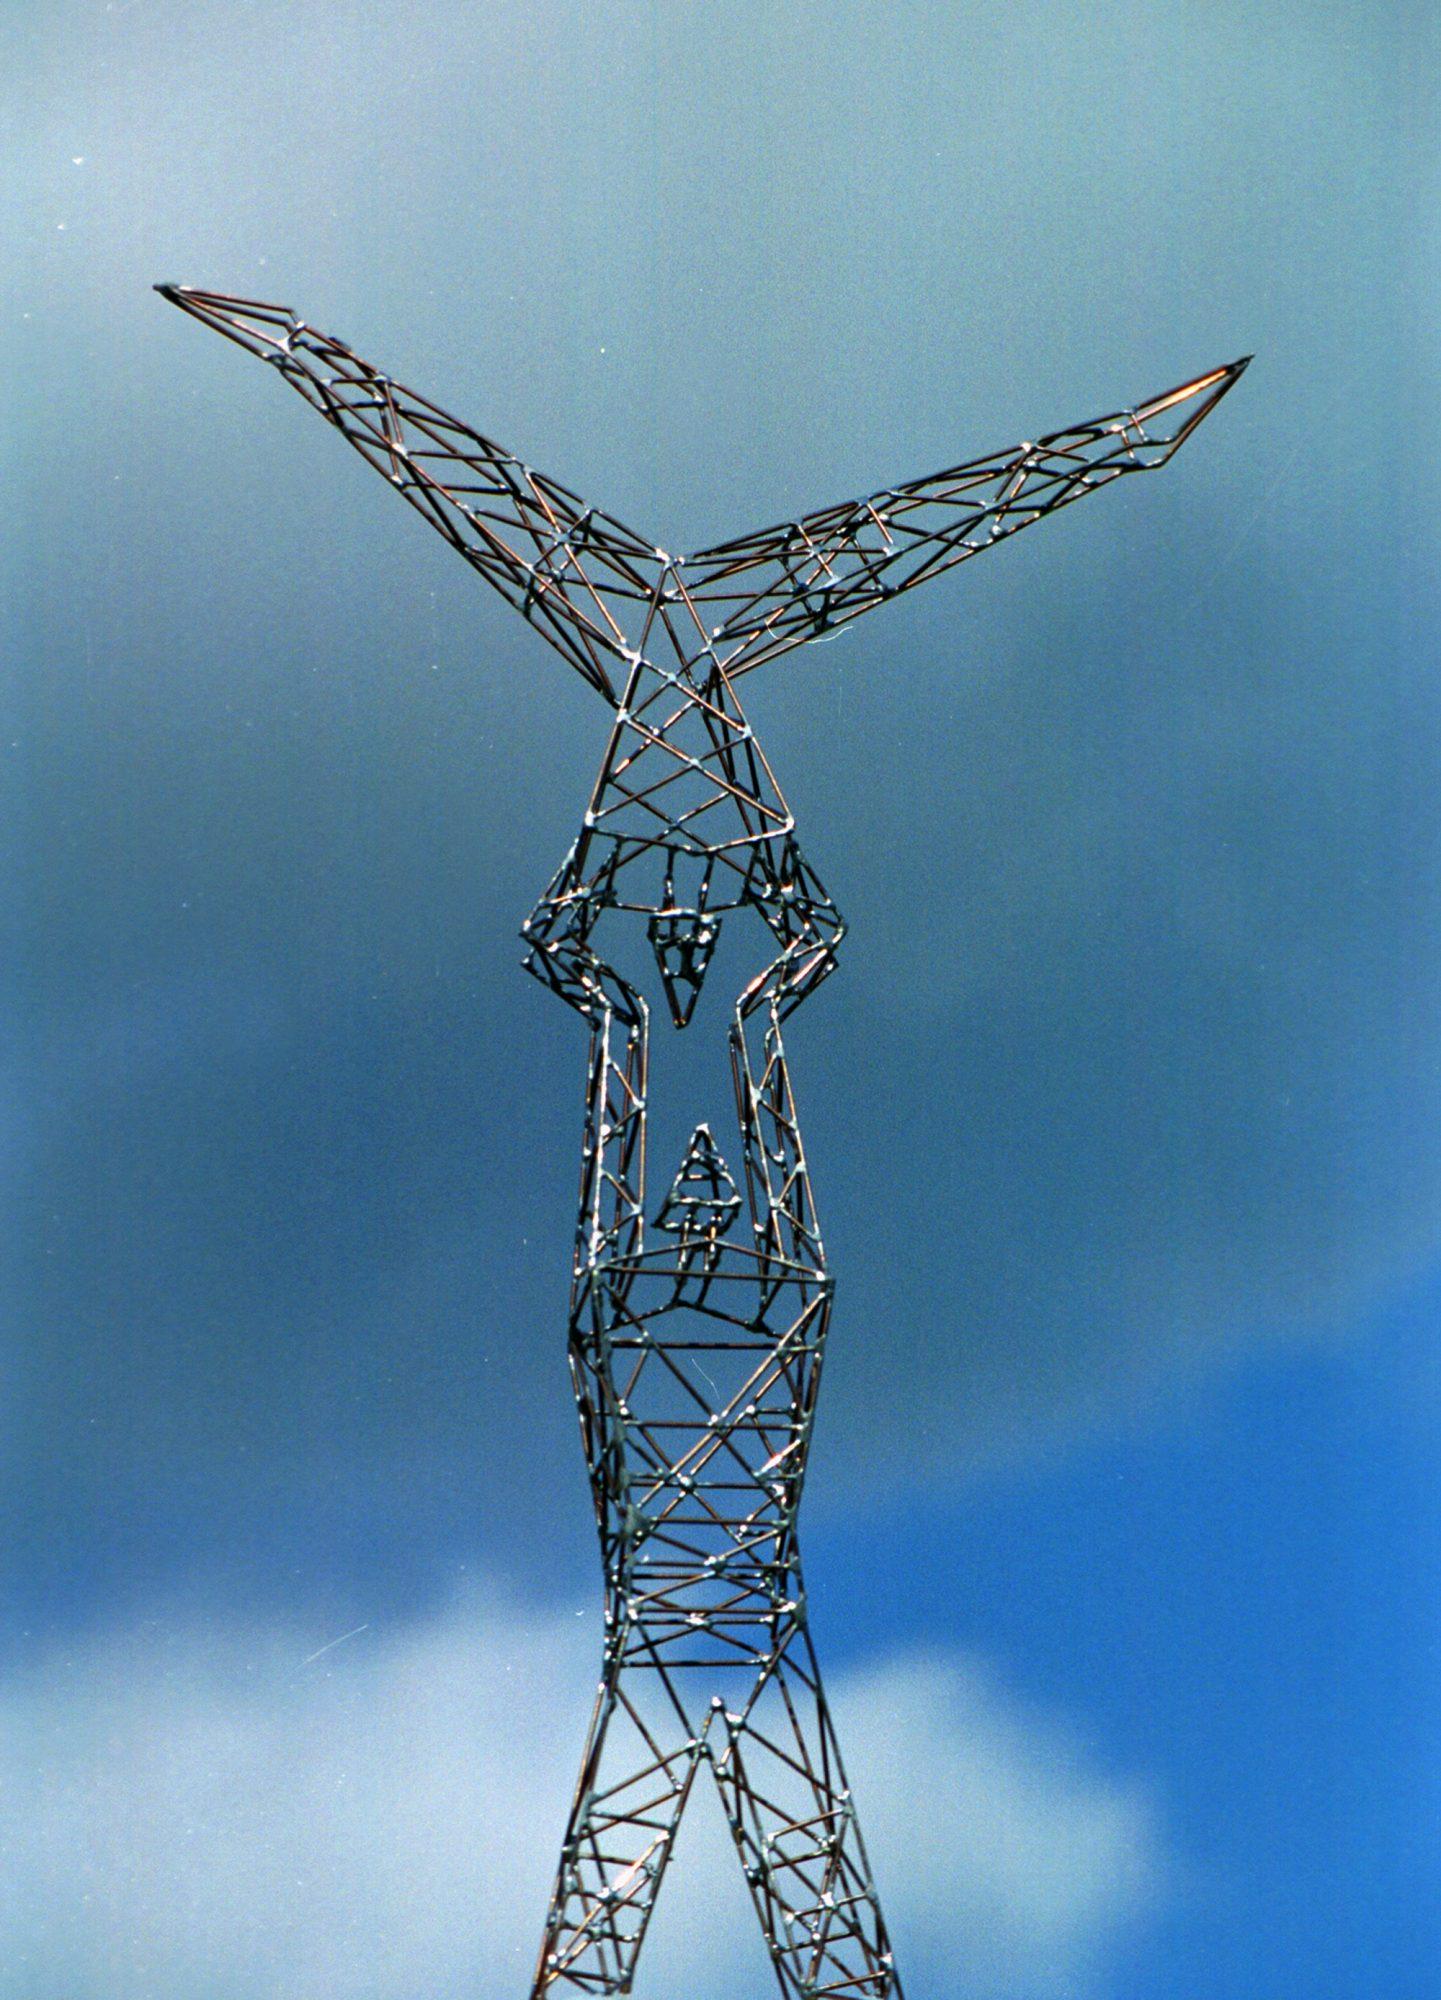 Acrobats, Sculpture-Pylon